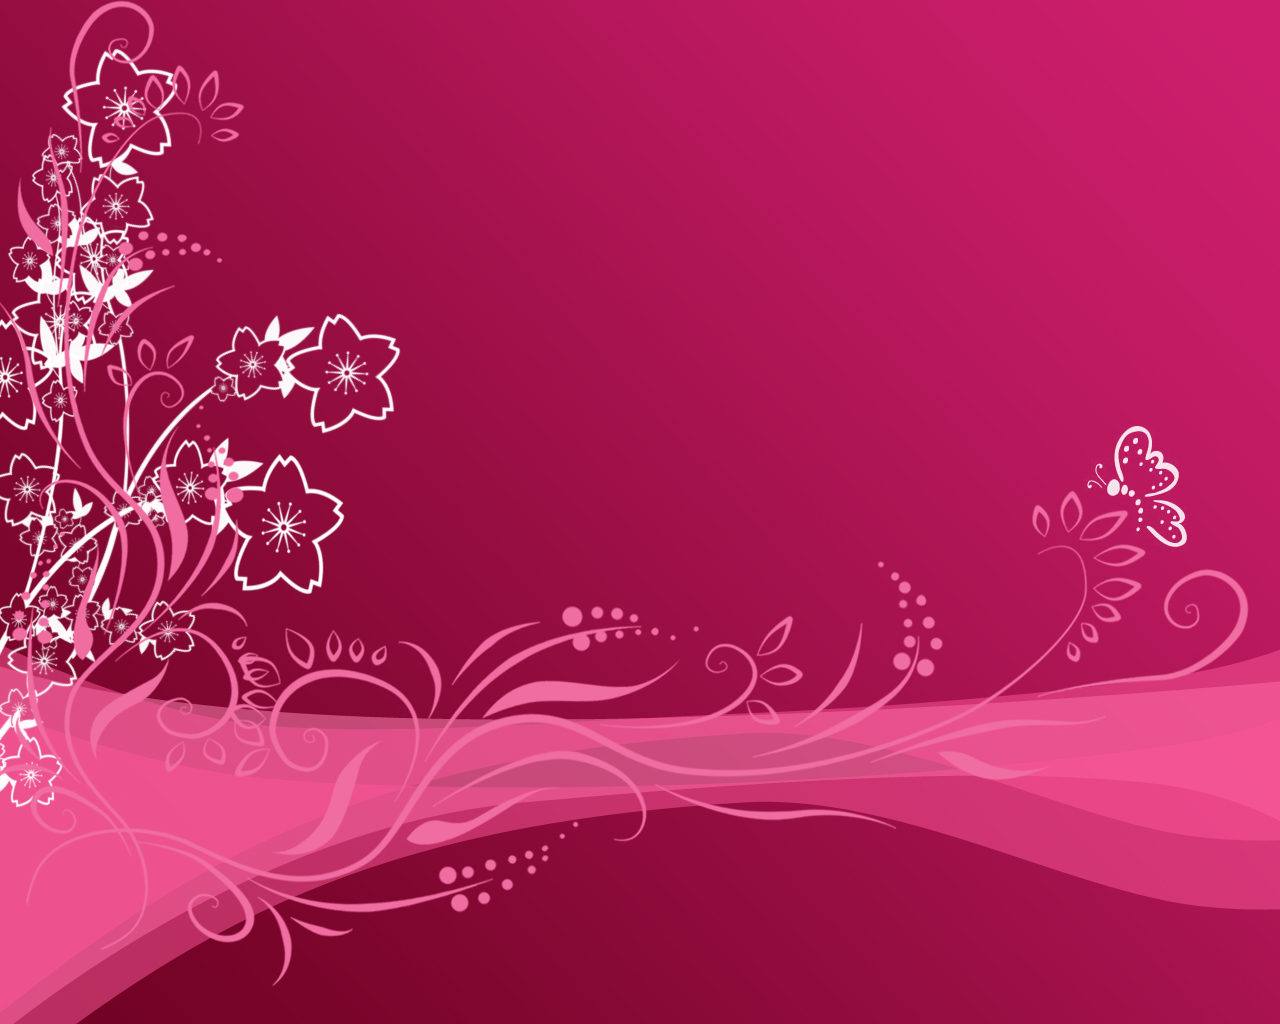 Pink HD Wallpapers - WallpaperSafari